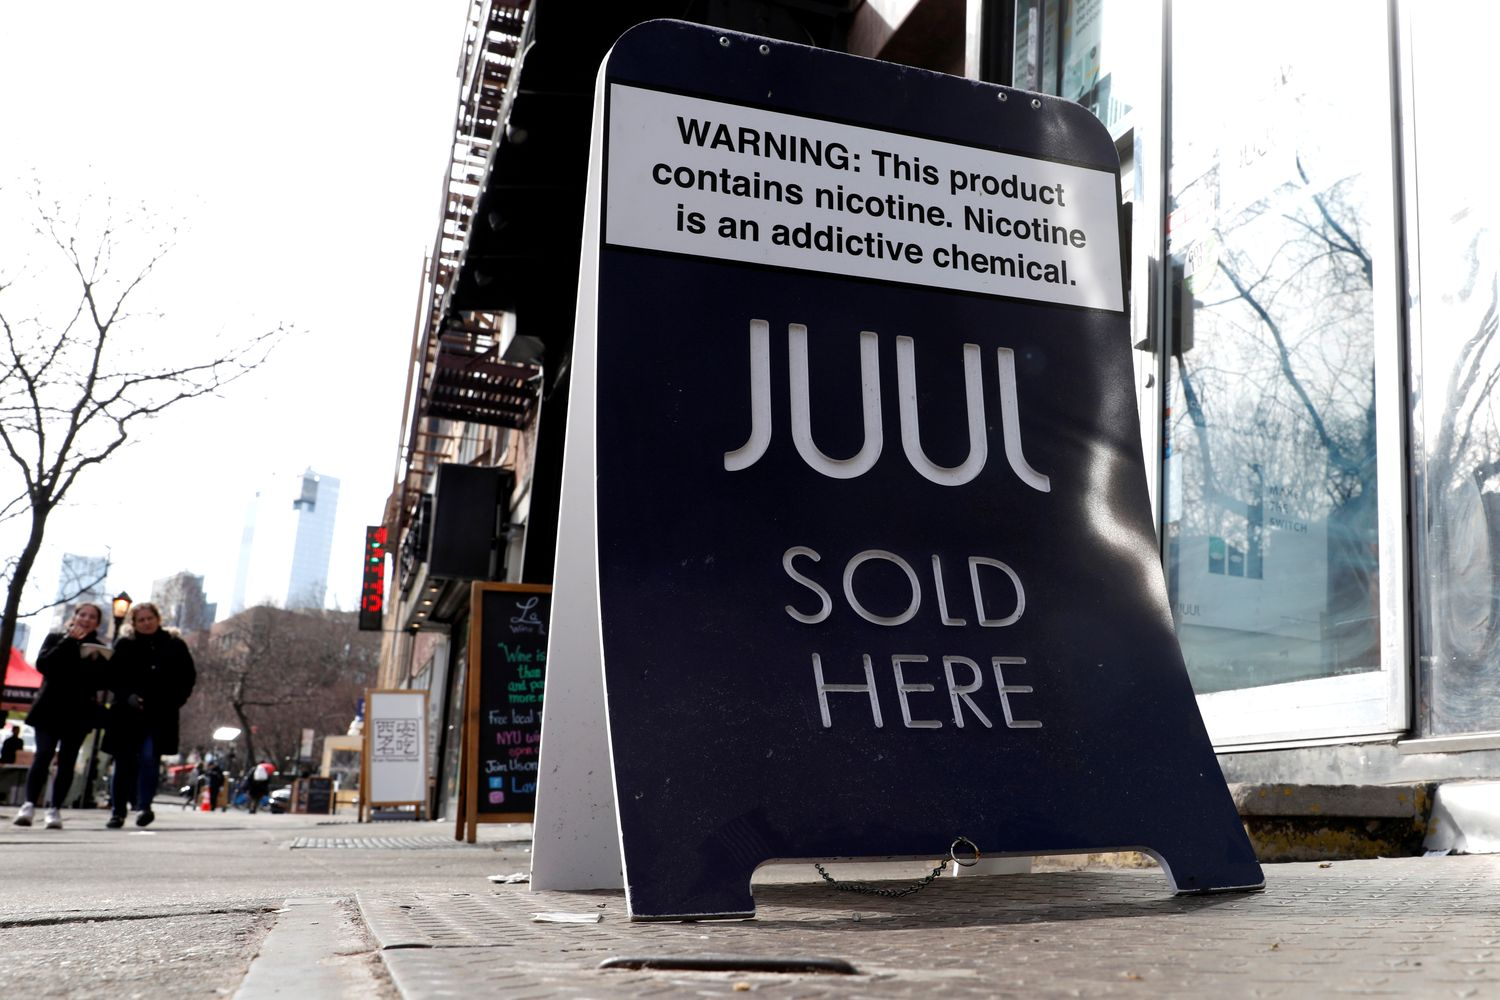 FTC probes marketing practices of e-cigarette maker Juul